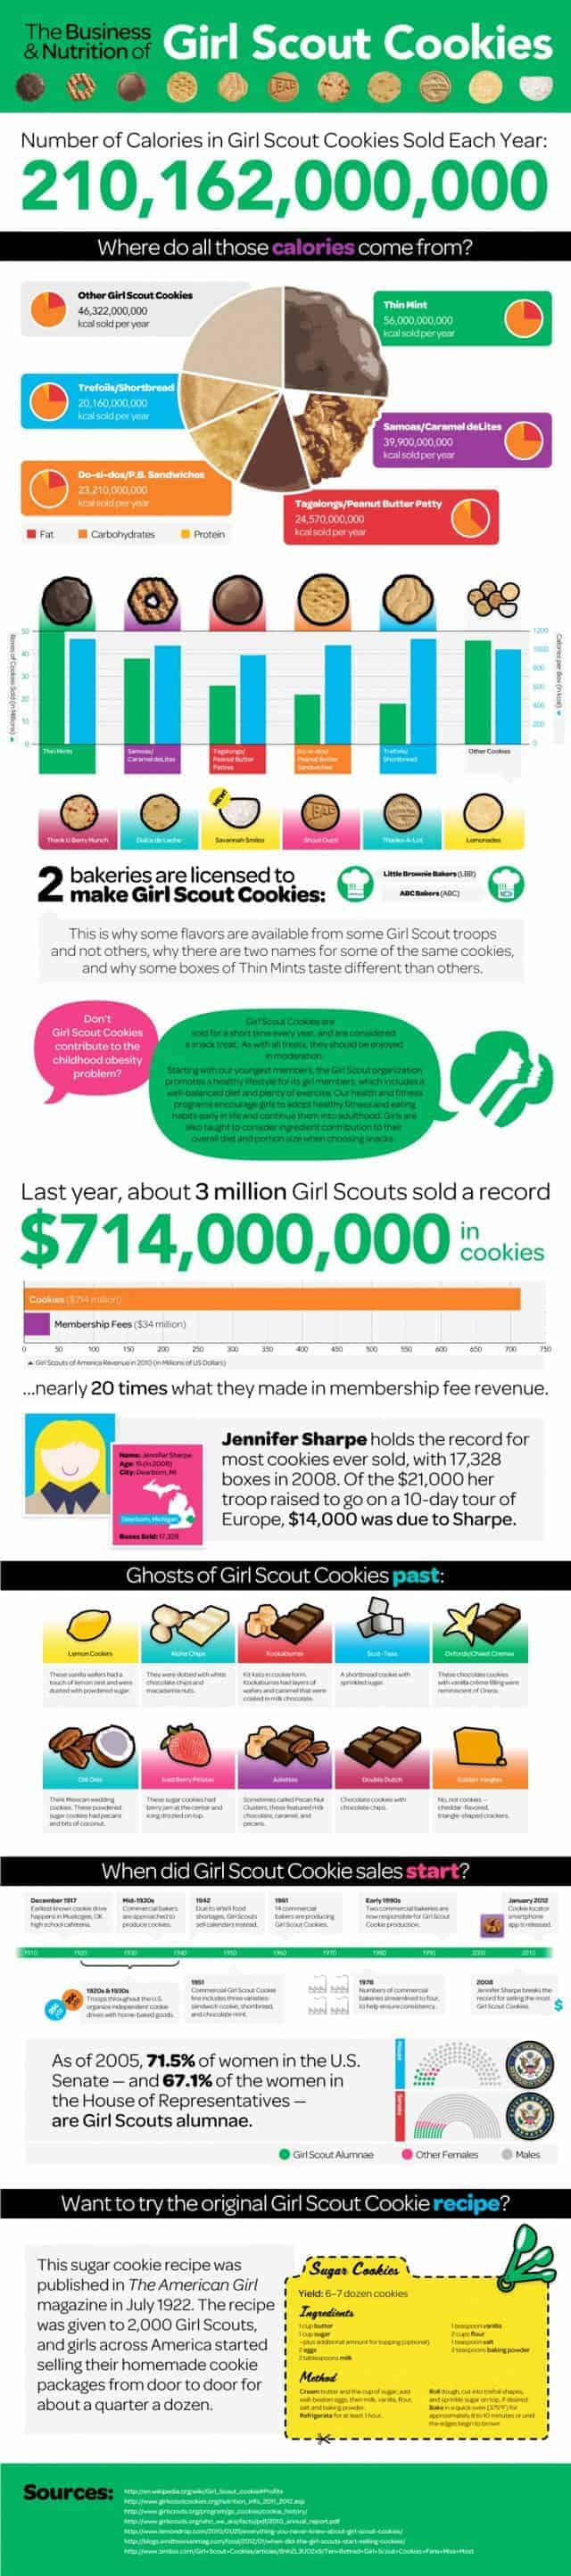 Business & Nutrition of Girl Scout Cookies Infographic